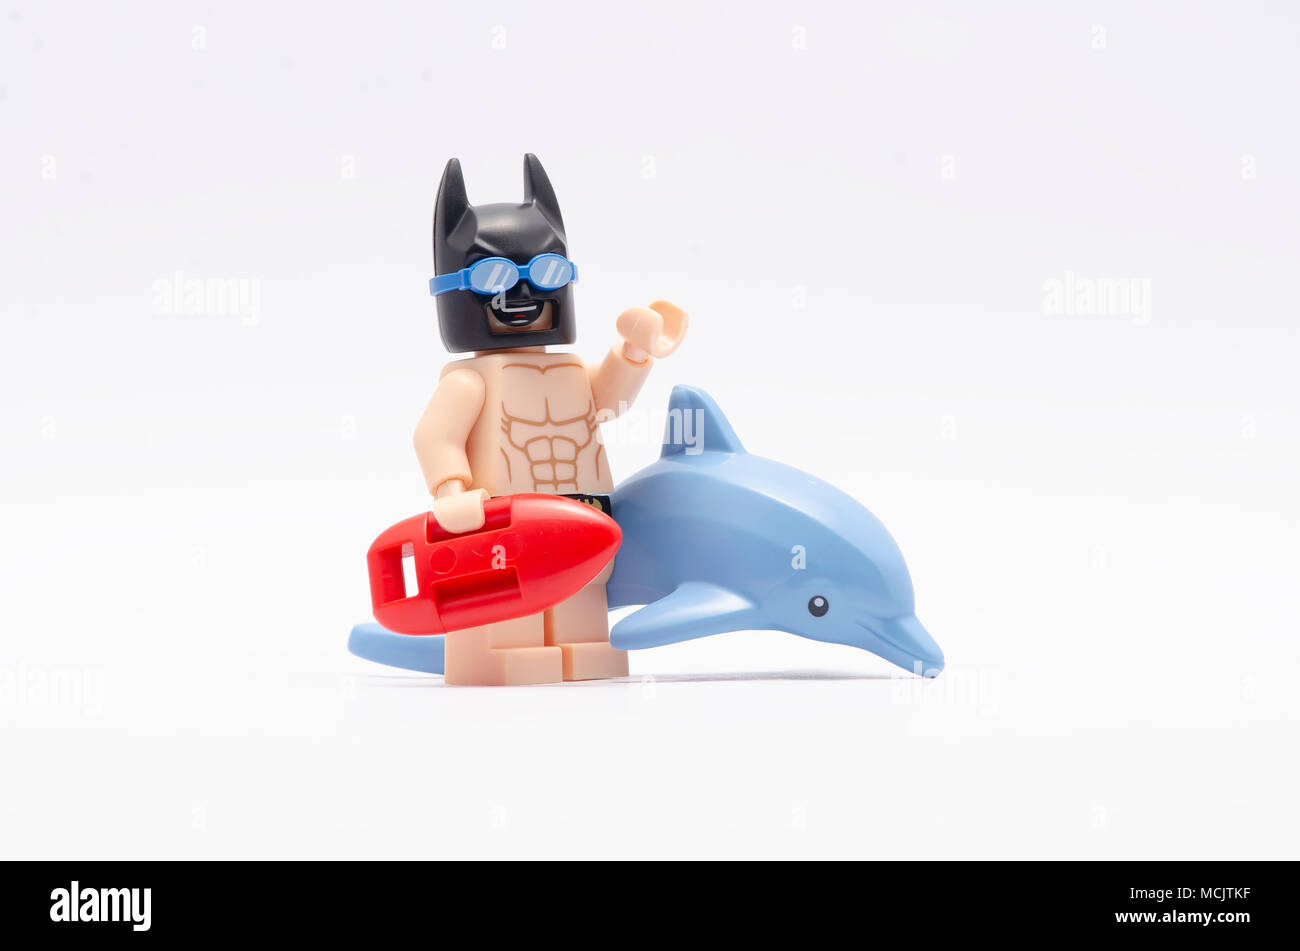 mini figure of  beach batman and a dolphin. Lego minifigures are manufactured by The Lego Group. - Stock Image